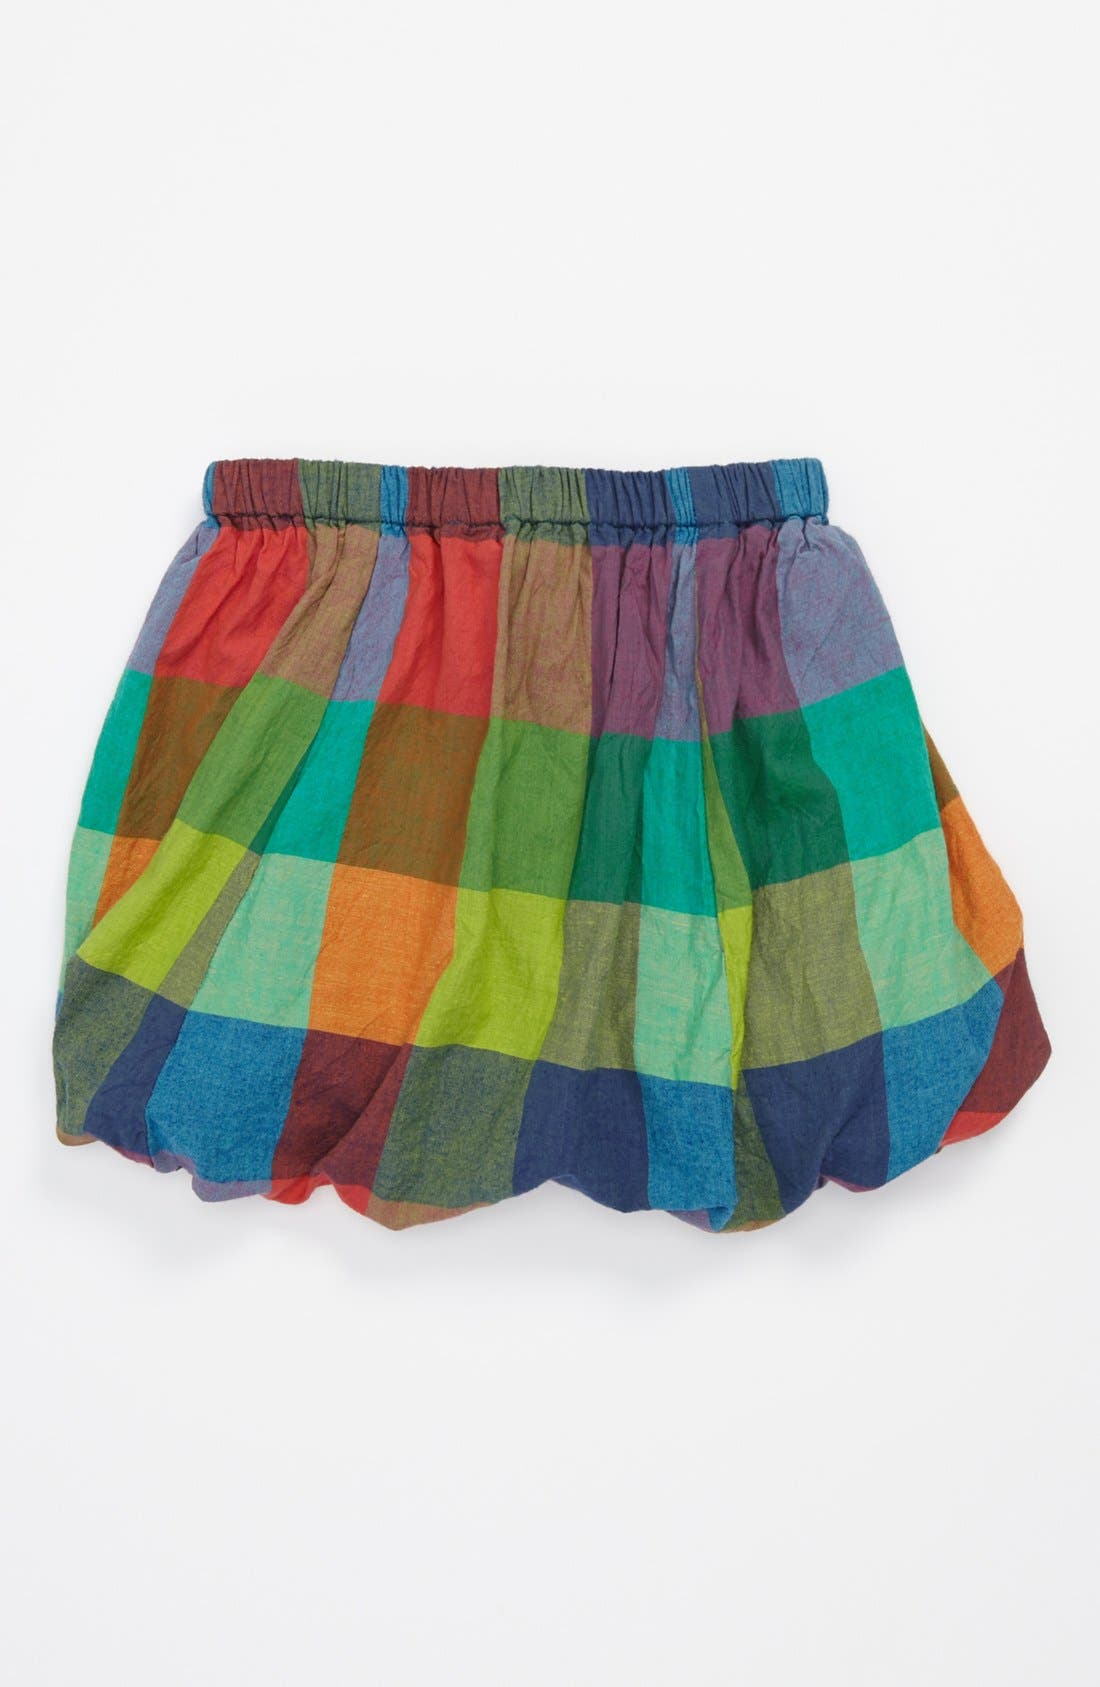 Alternate Image 1 Selected - Peek 'Sadie' Skirt (Toddler Girls, Little Girls & Big Girls)